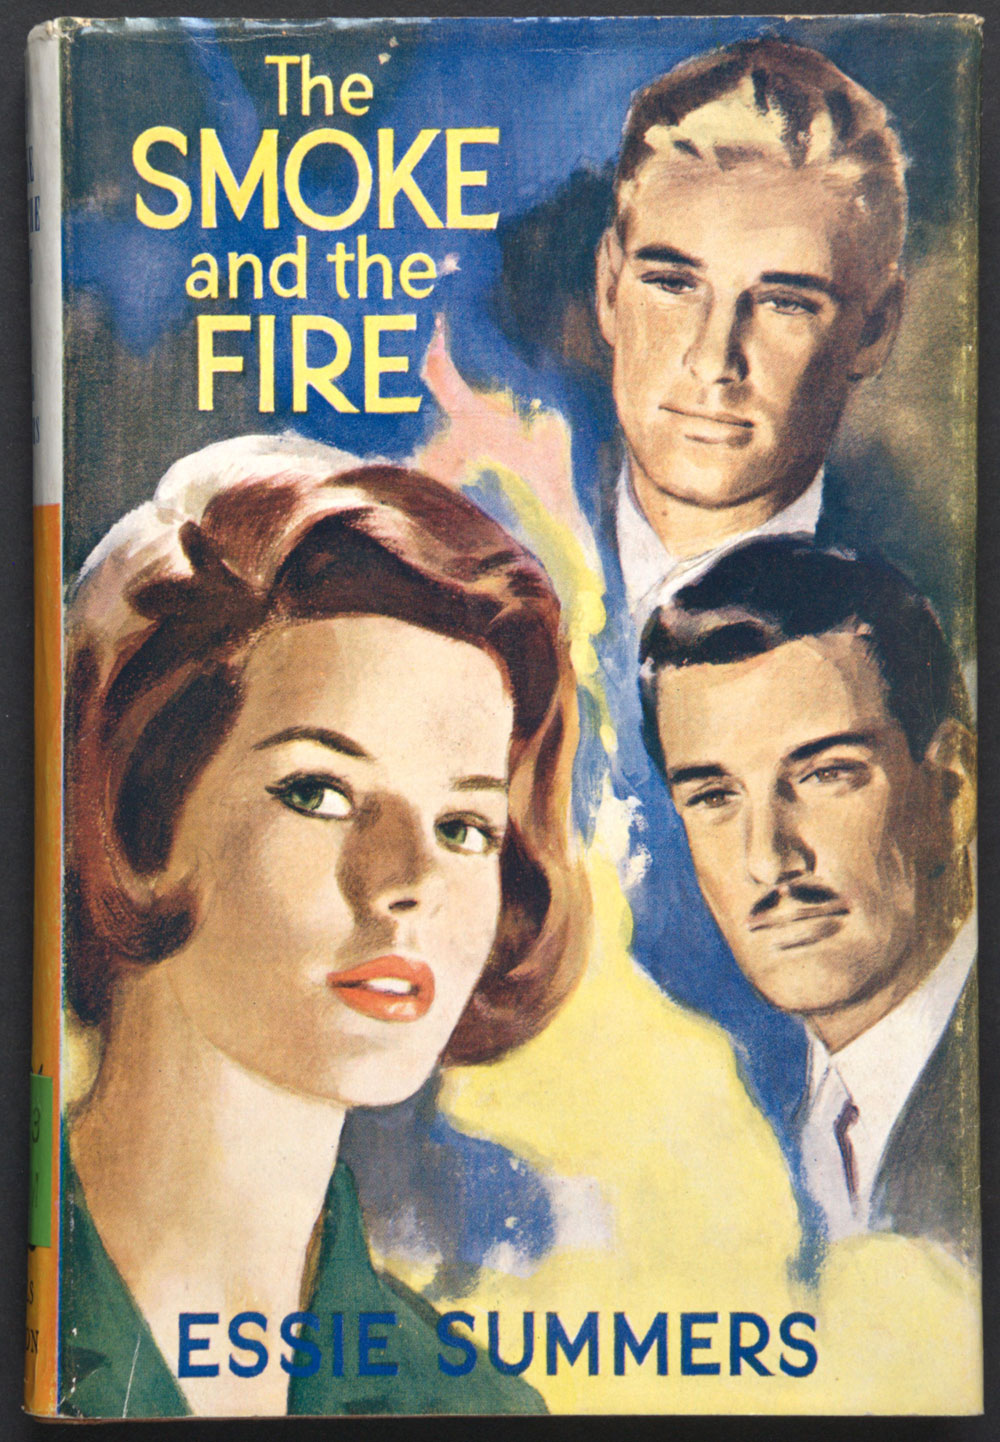 Essie Summers. <em>The smoke and the fire</em>. London: Mills & Boon, 1964.